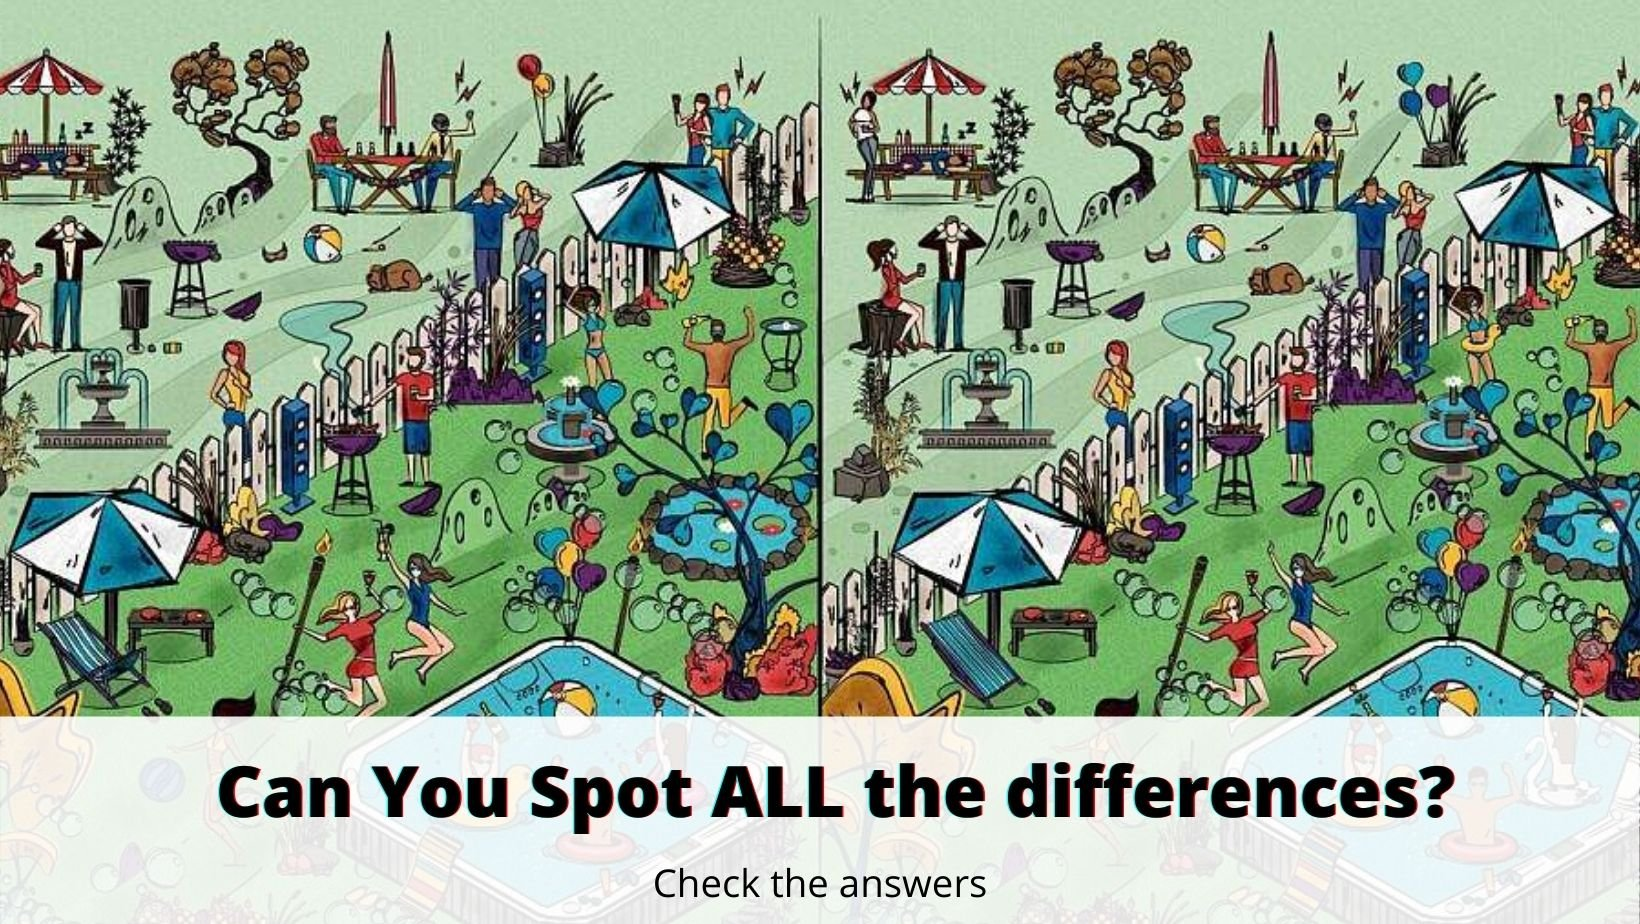 small joys thumbnail 4 3.jpg?resize=412,232 - Can You Spot All EIGHT Differences In This Party Image?